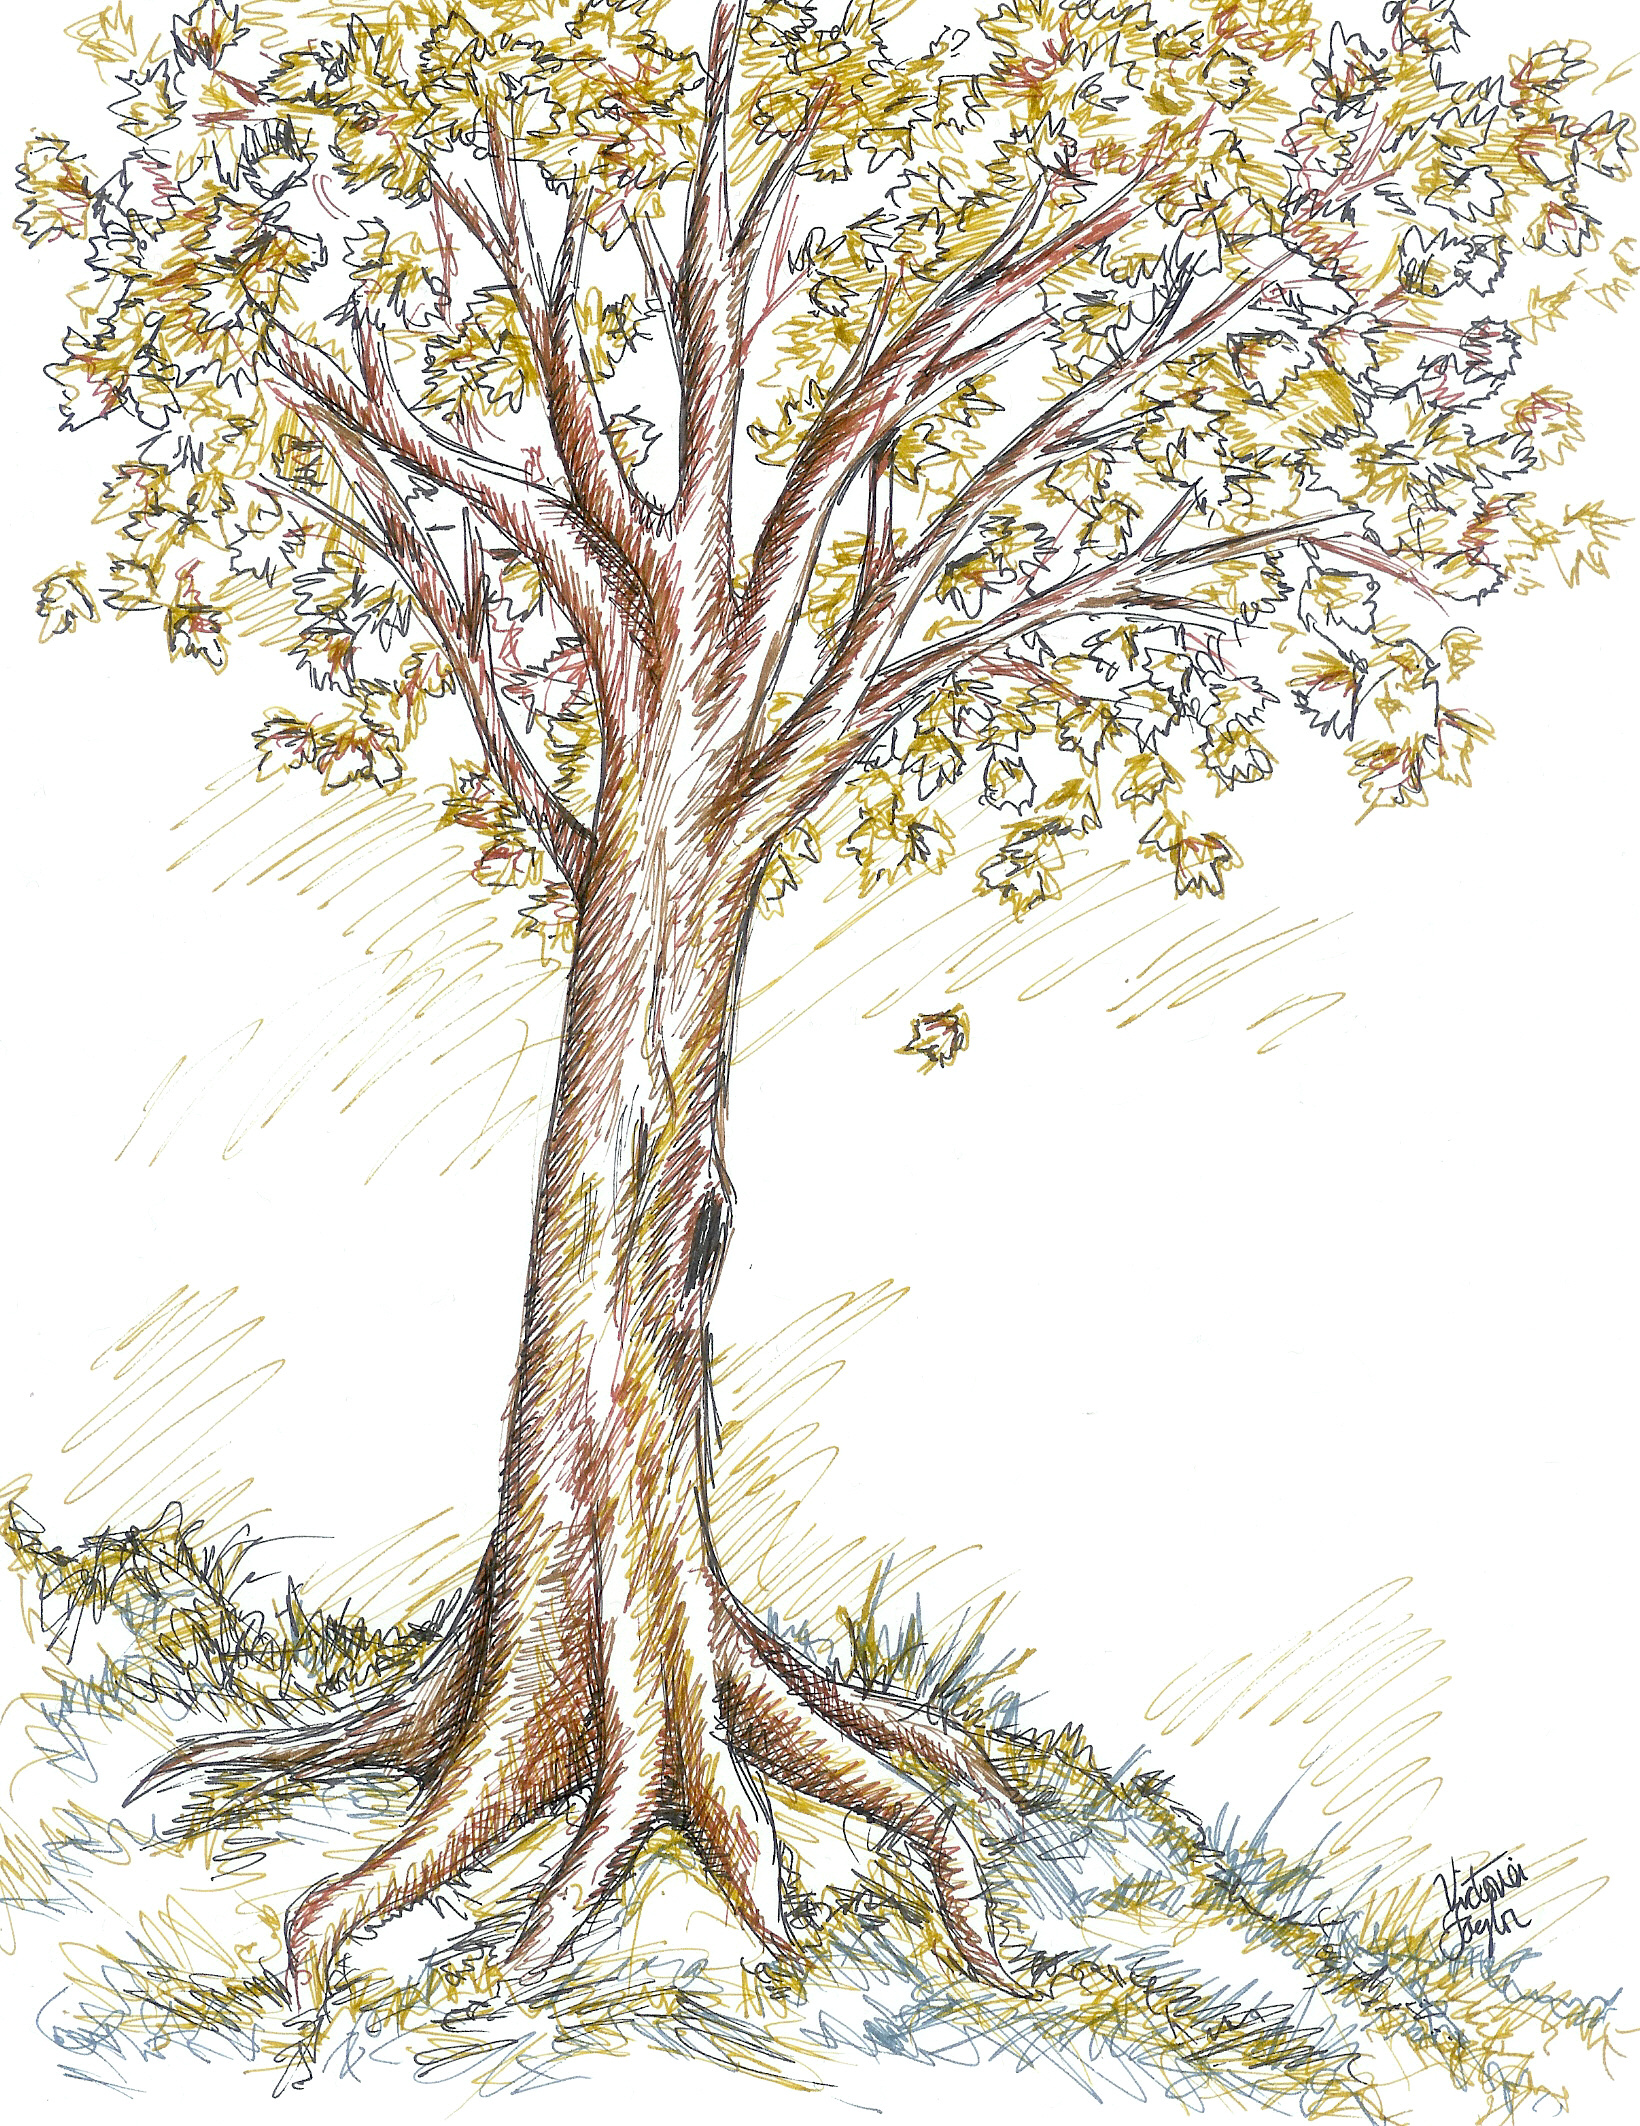 autumn tree drawing at getdrawings com free for personal use